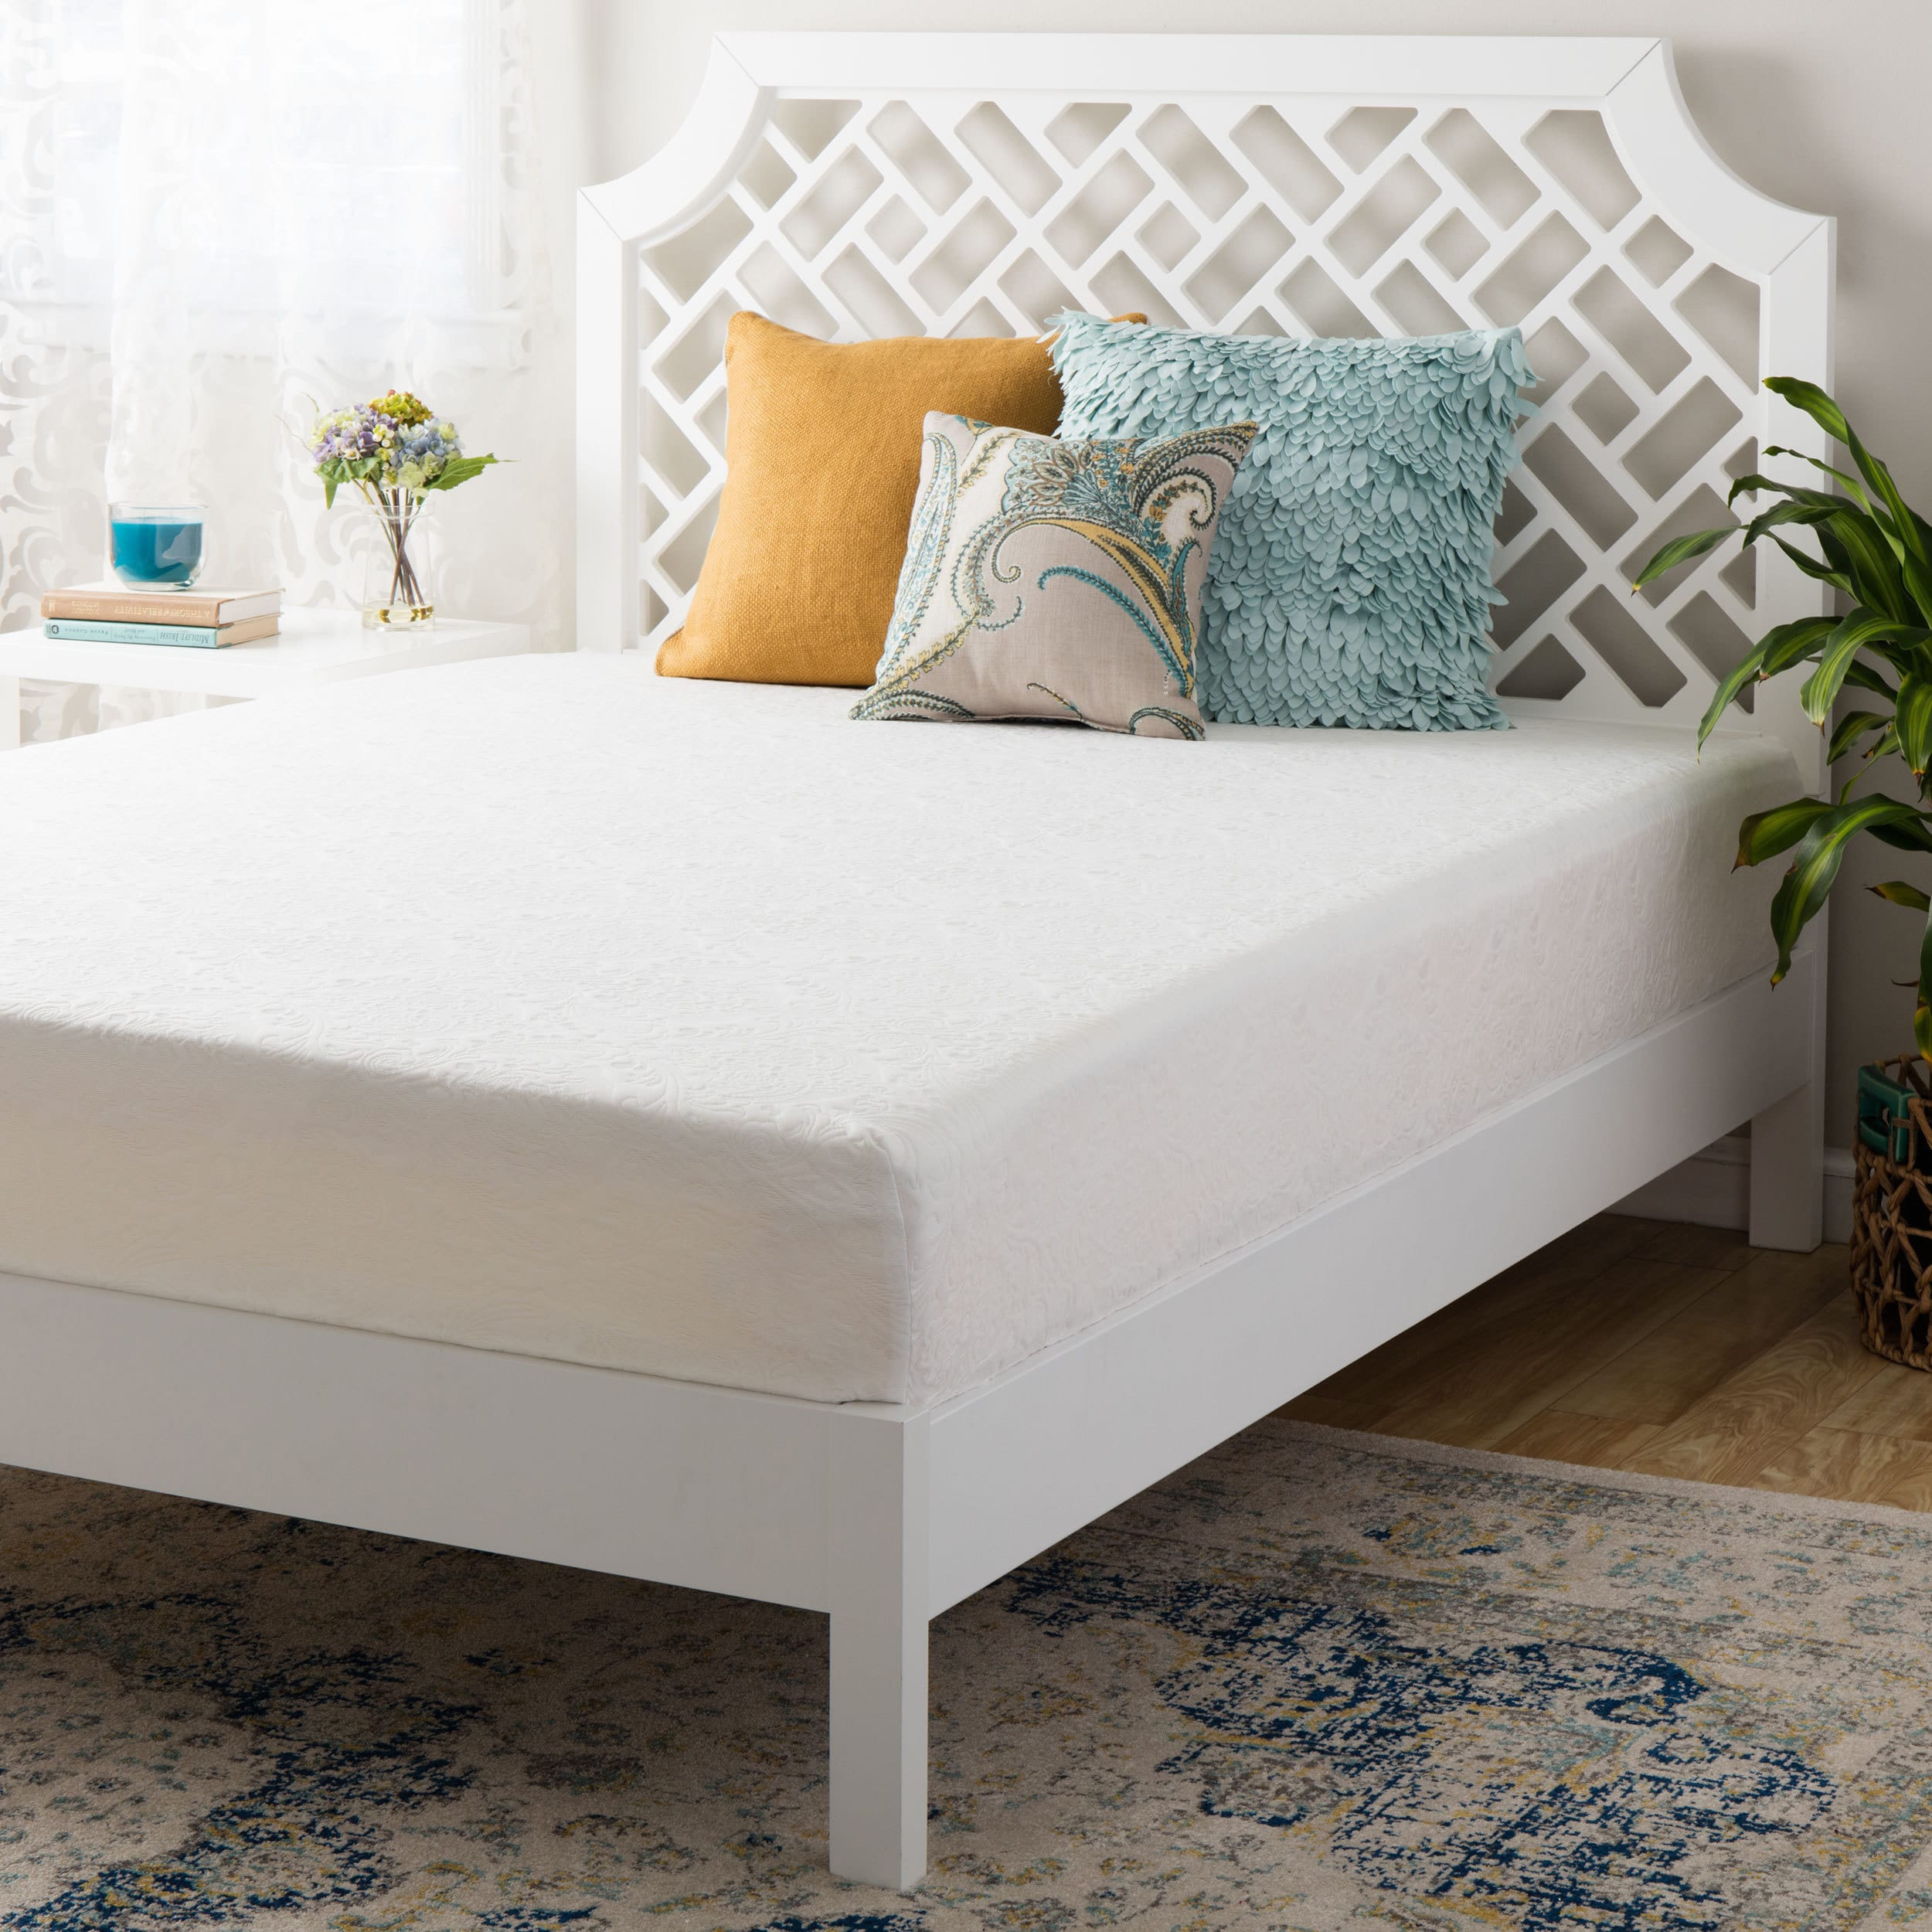 Orthosleep Product 13-inch Memory Foam California King-size Mattress